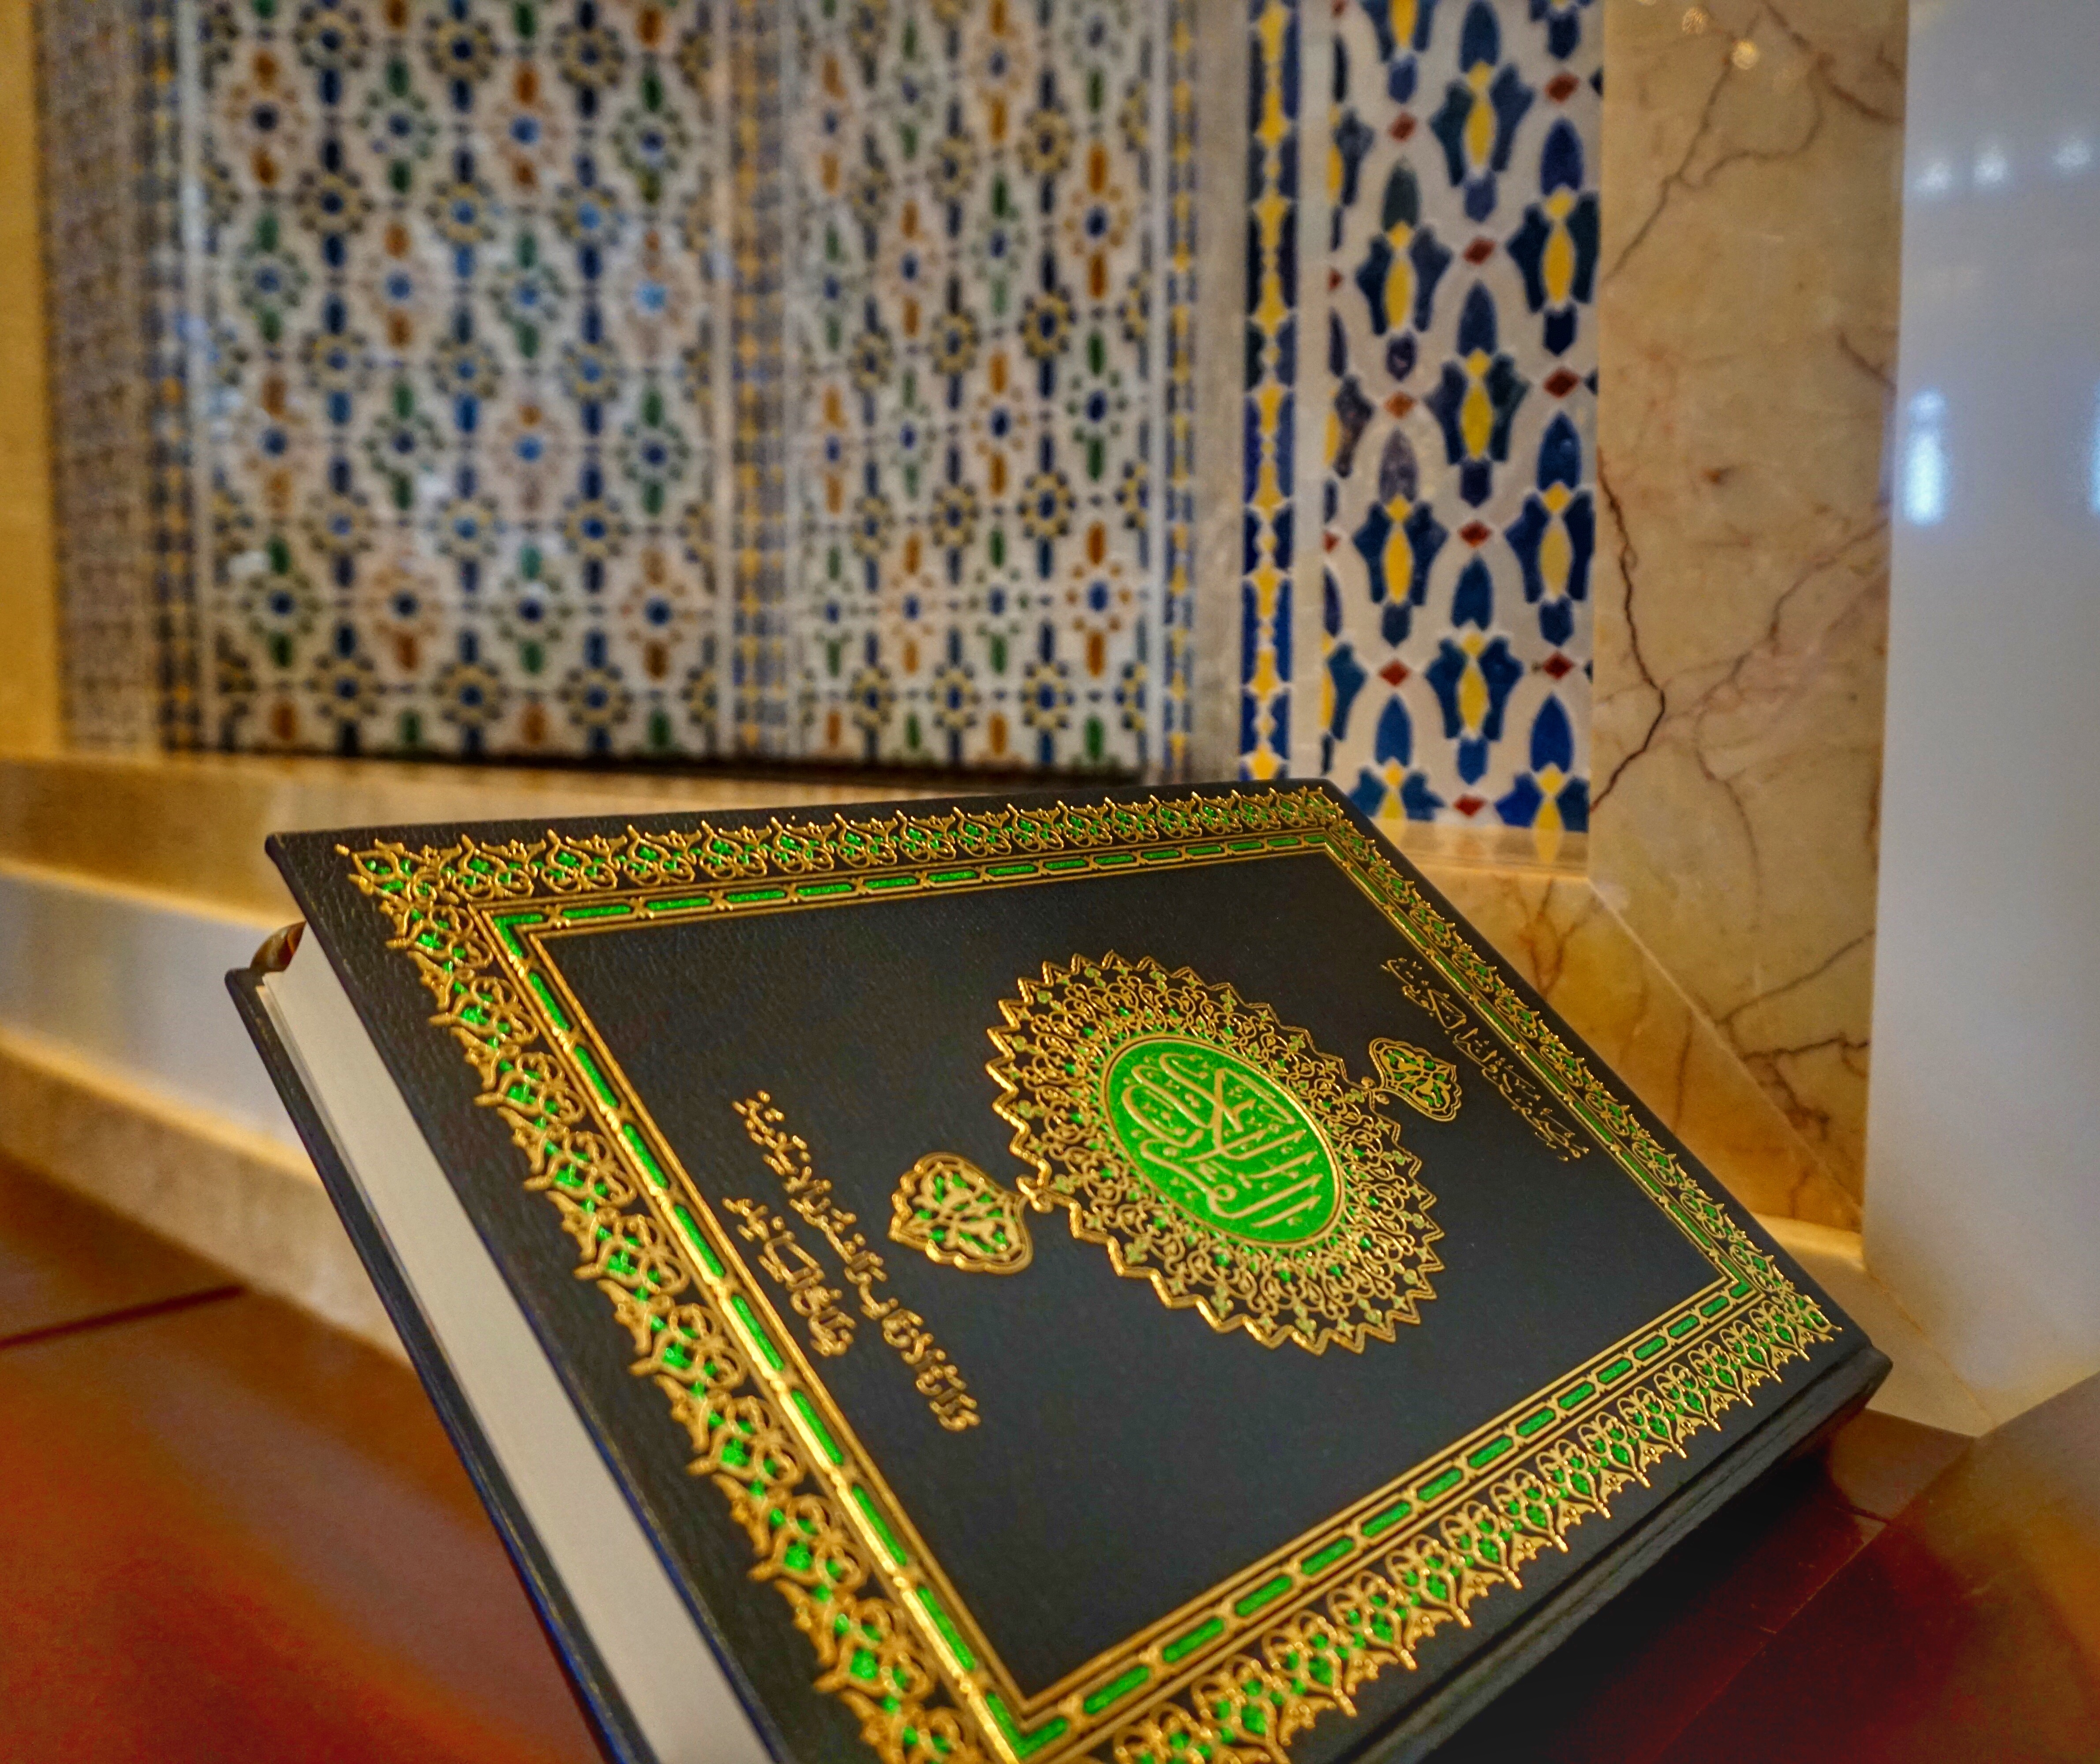 Life in Kuwait: Meandering through a Mosque